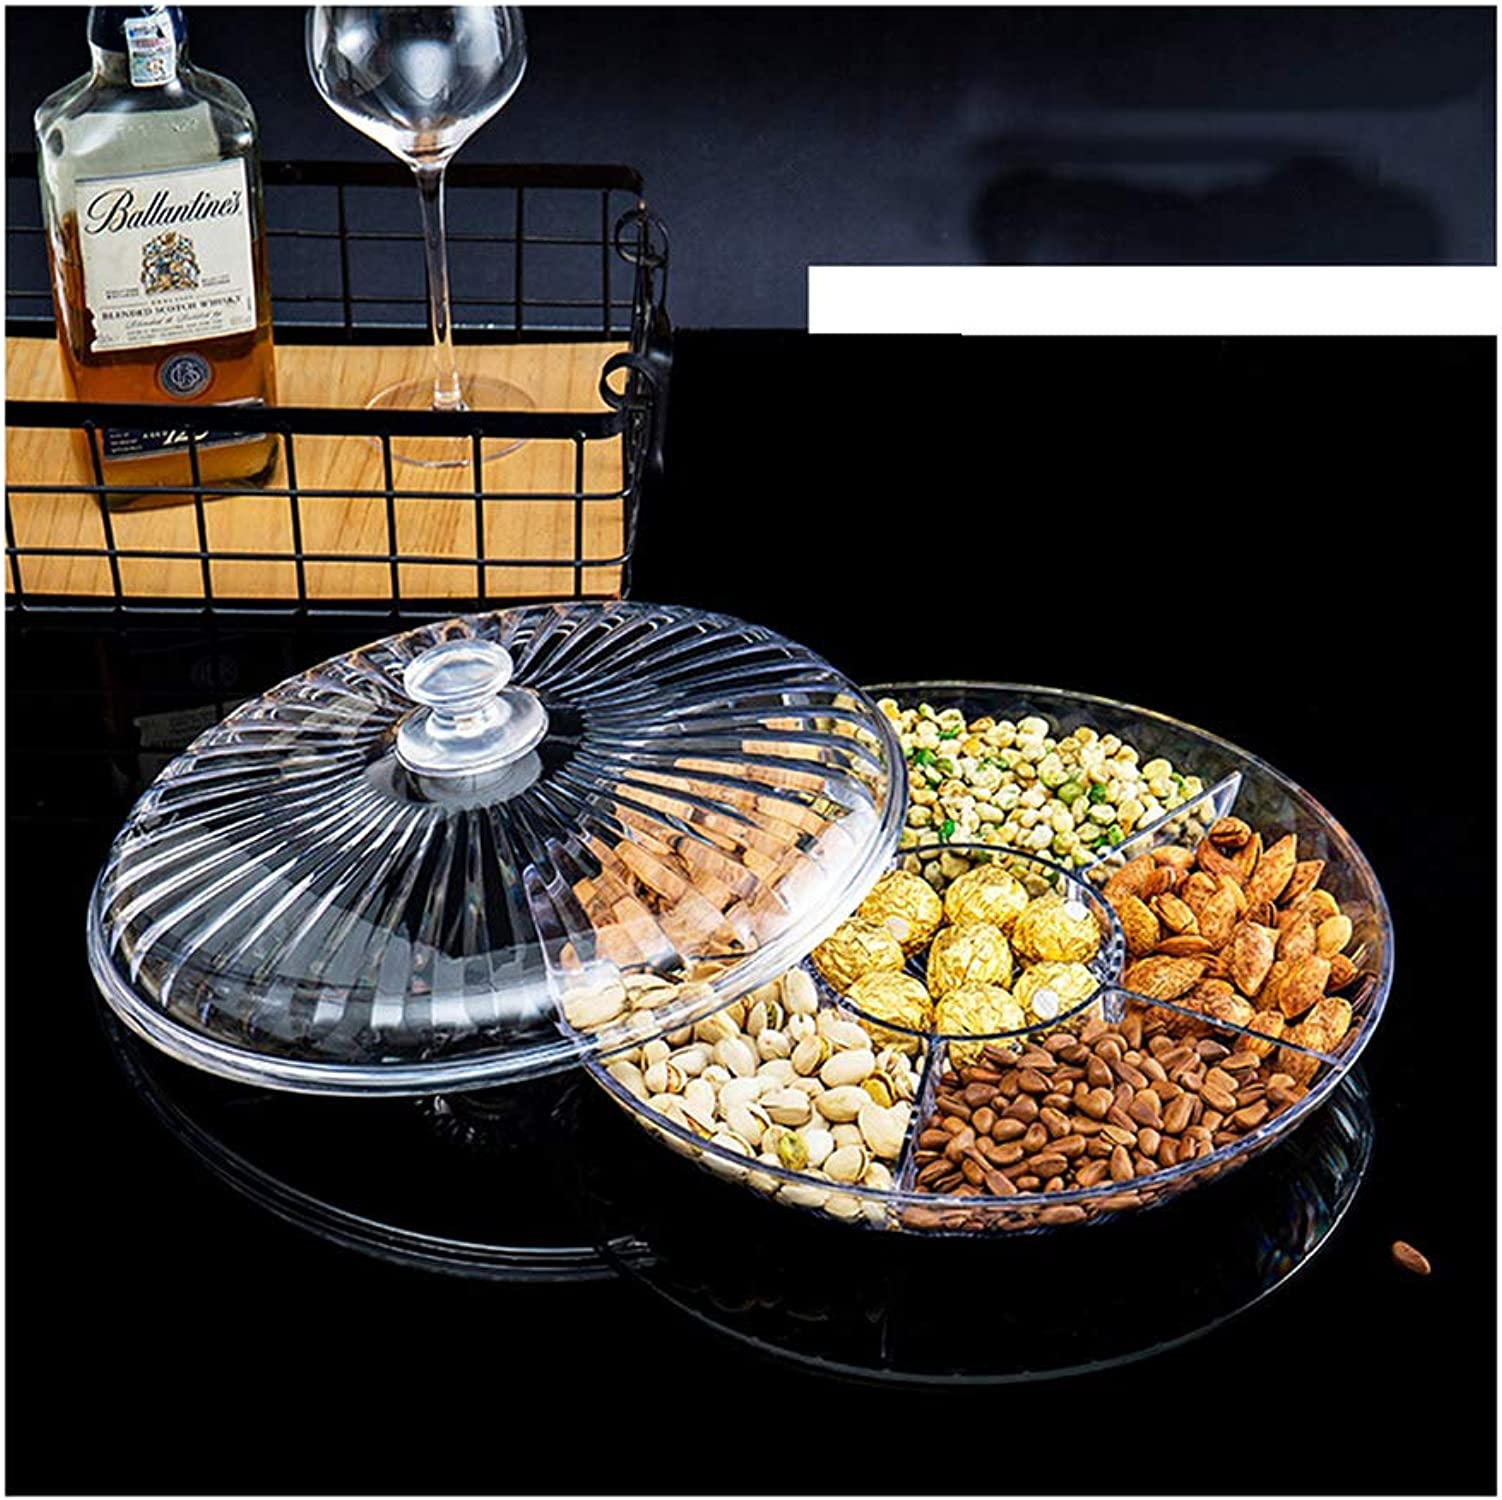 BEN-YI Panier de Fruits Assiette de Fruits Assiette de Fruits Assiette de Fruits Plateau de Fruits -Corbeille de Fruits (Couleur   Clair, Taille   M)